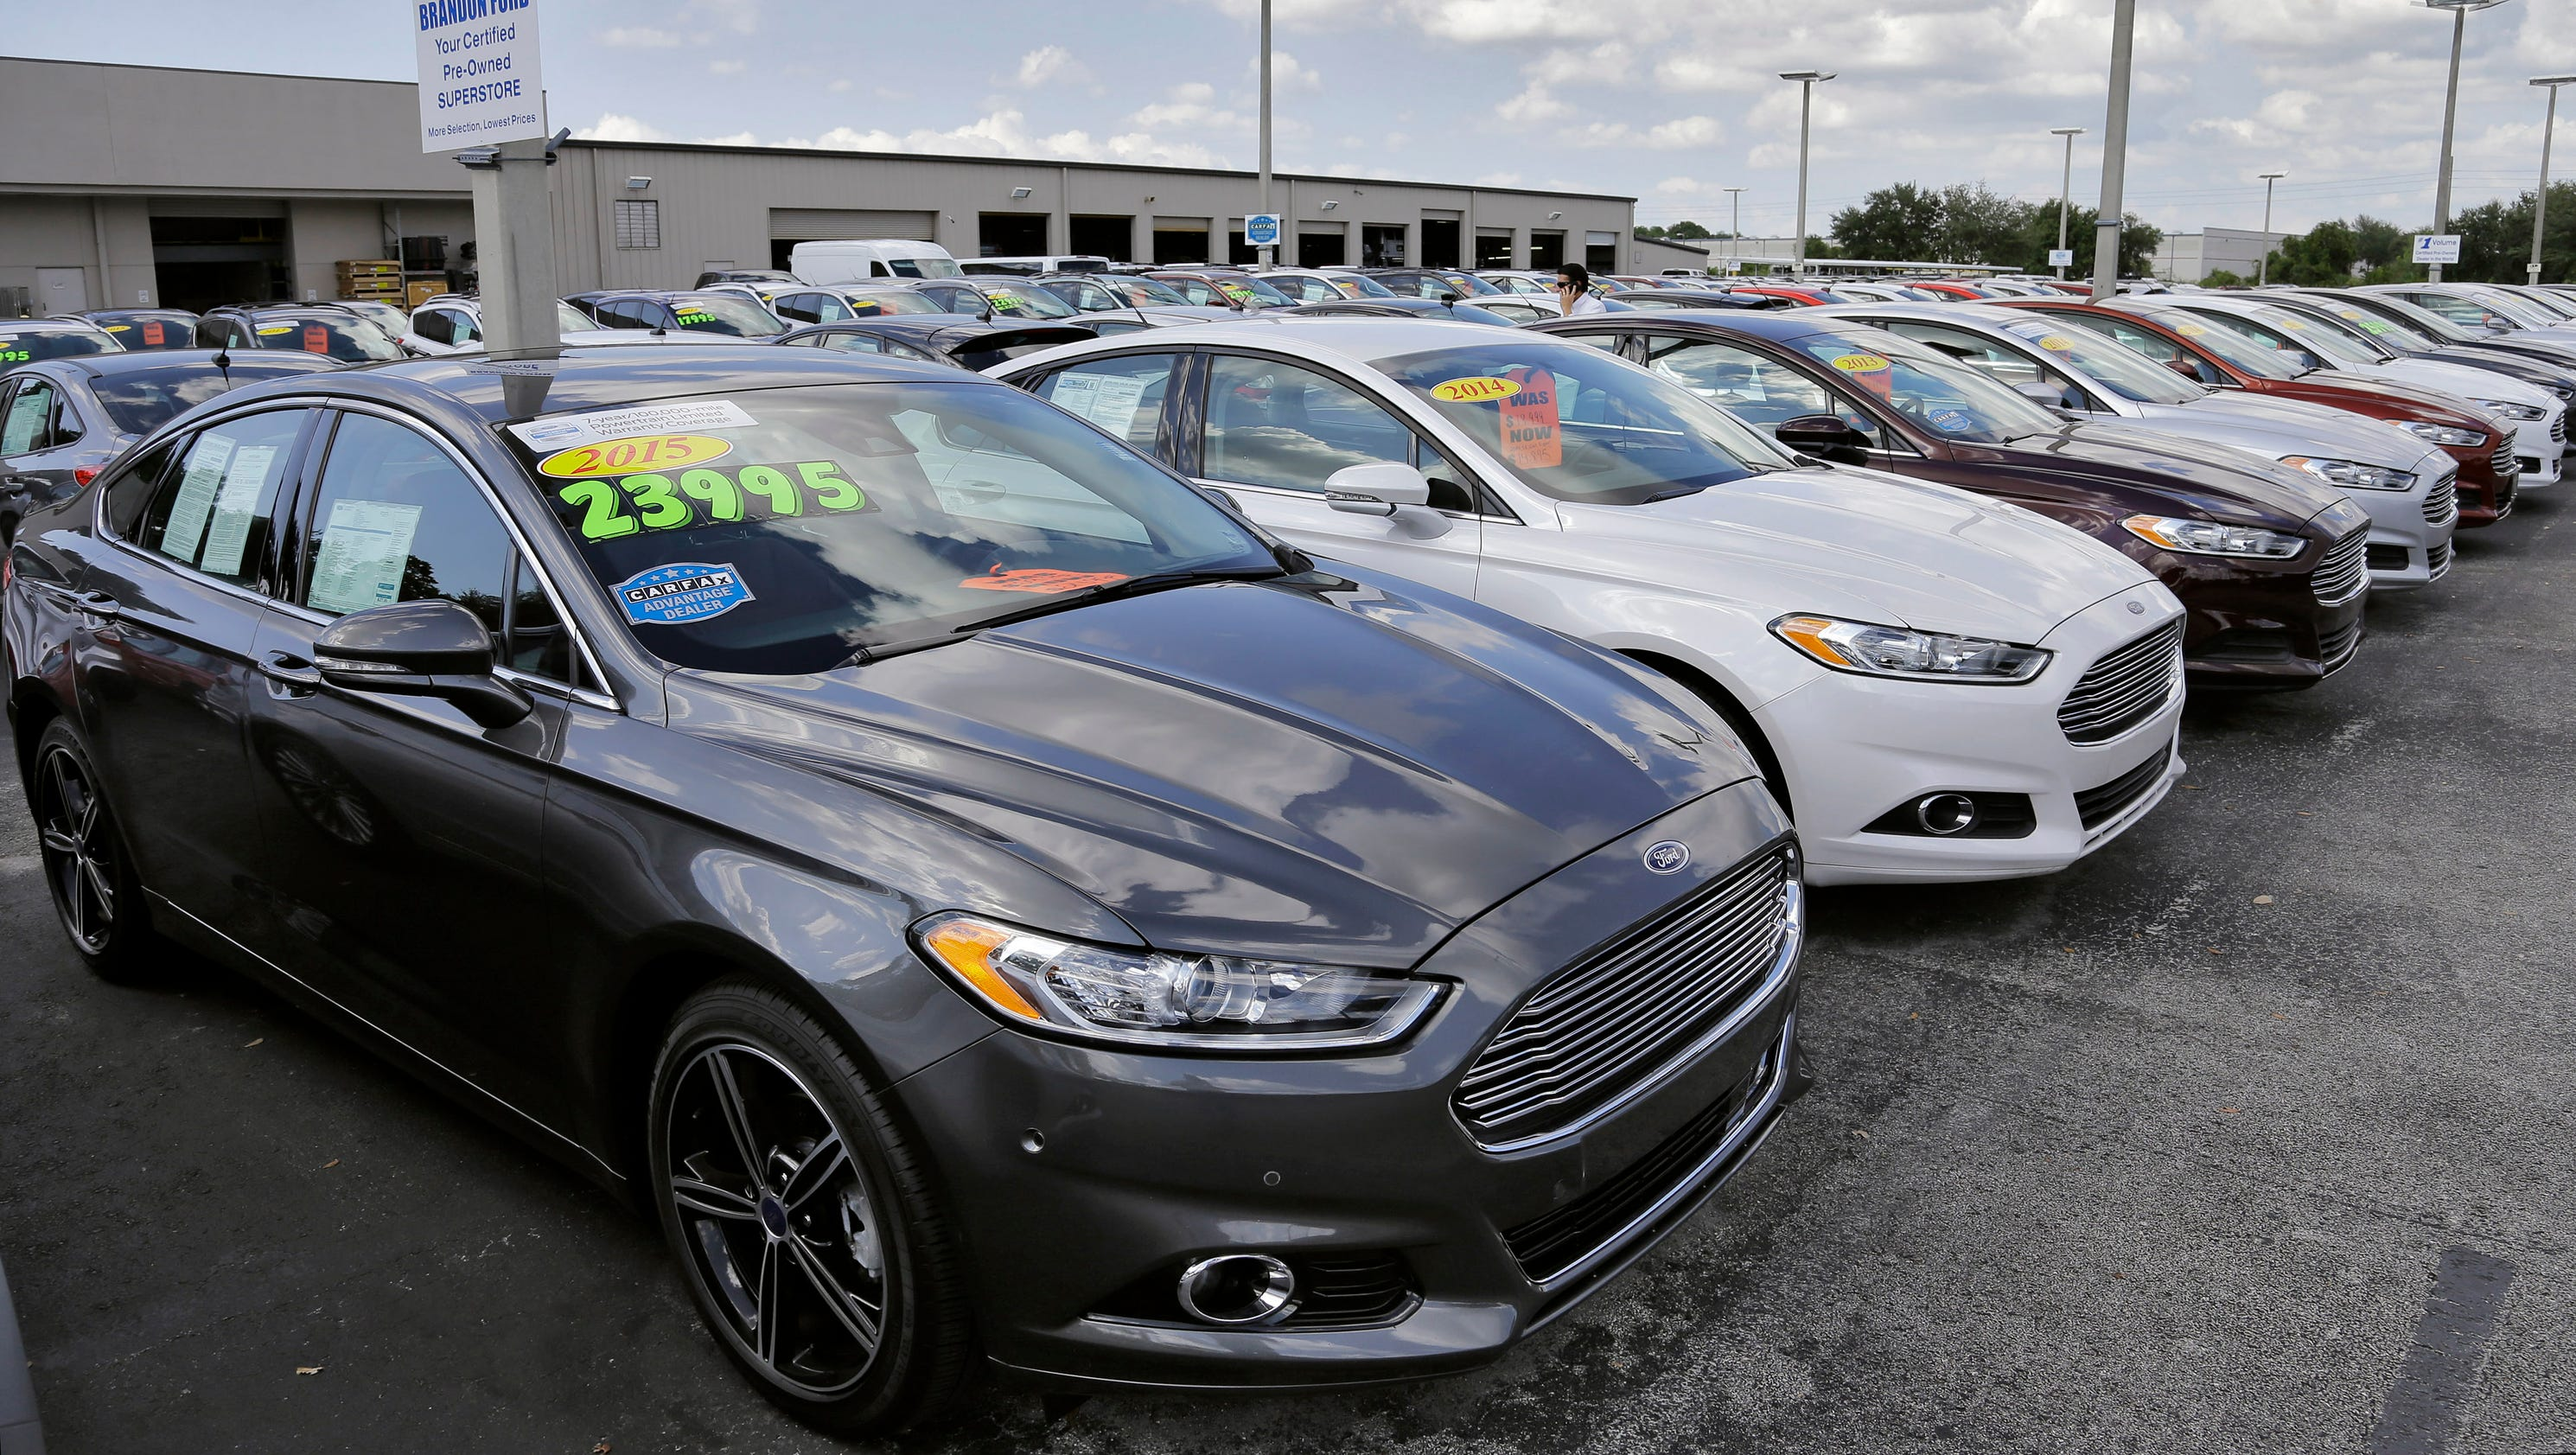 Used Cars Dealers Near Me >> The best times of the year to buy a used car